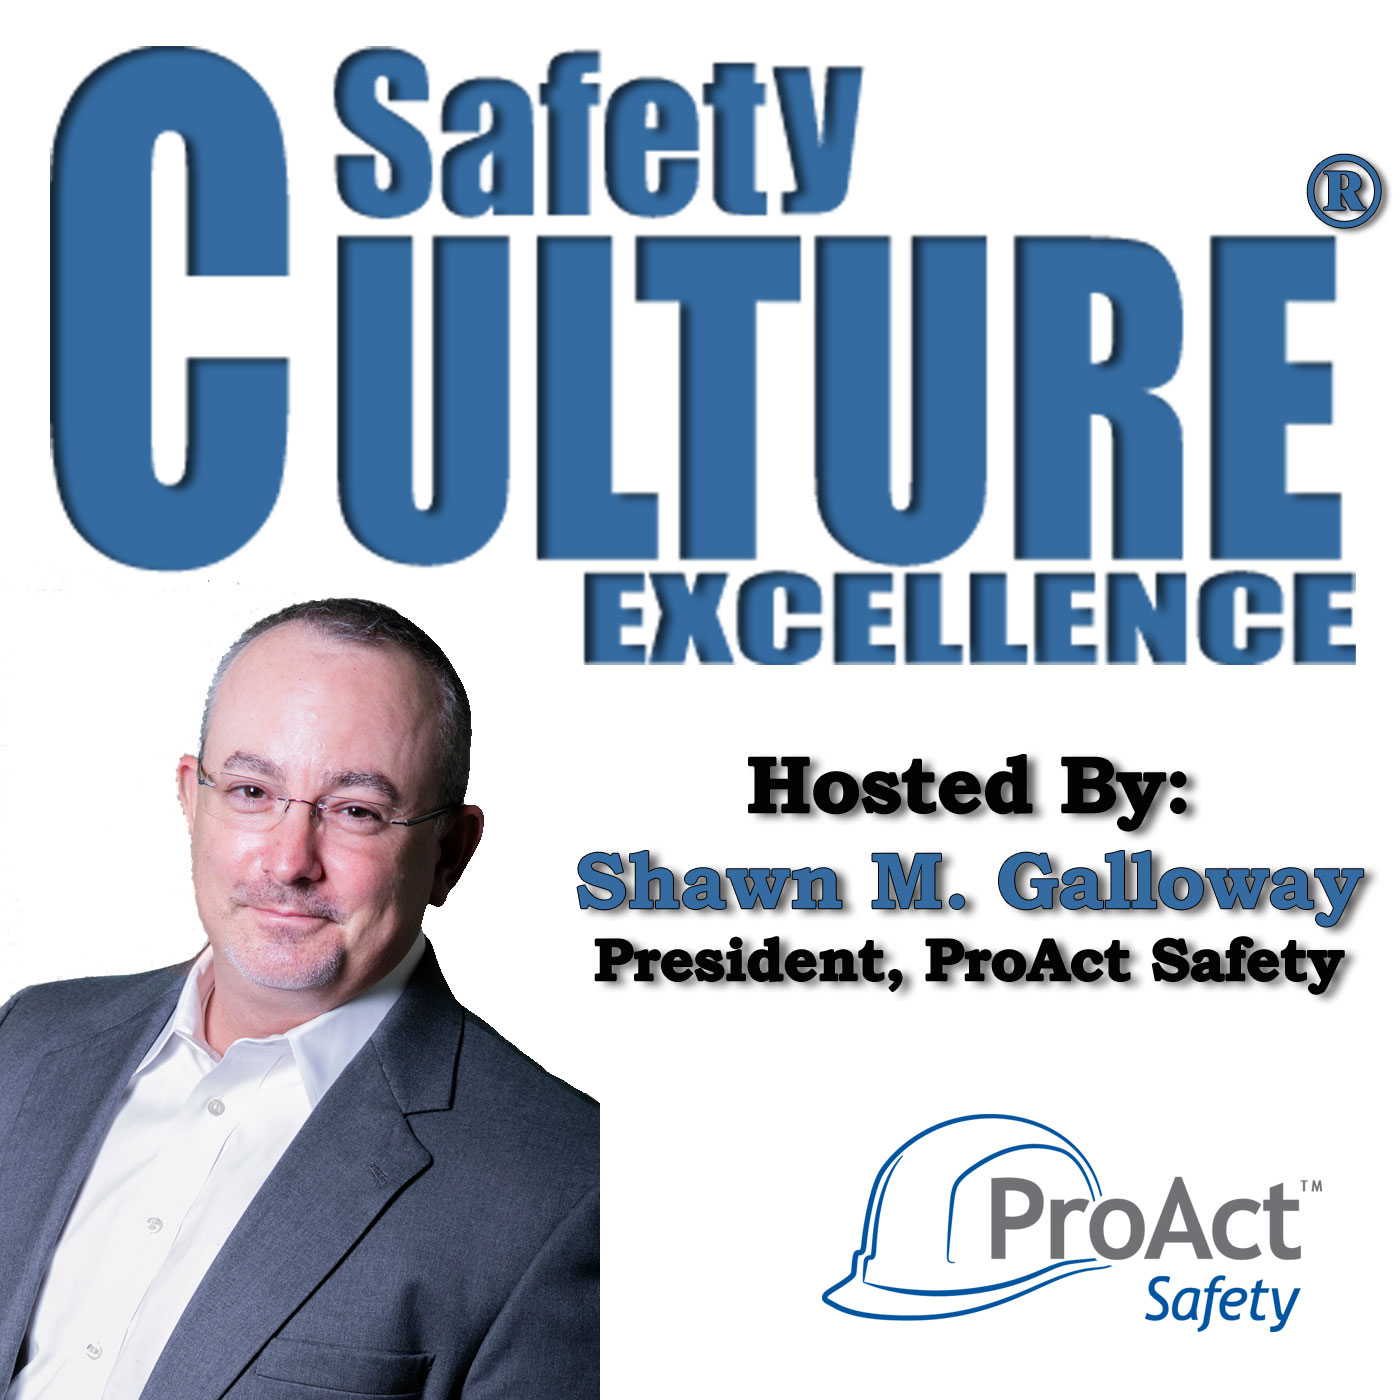 Safety Culture Excellence®